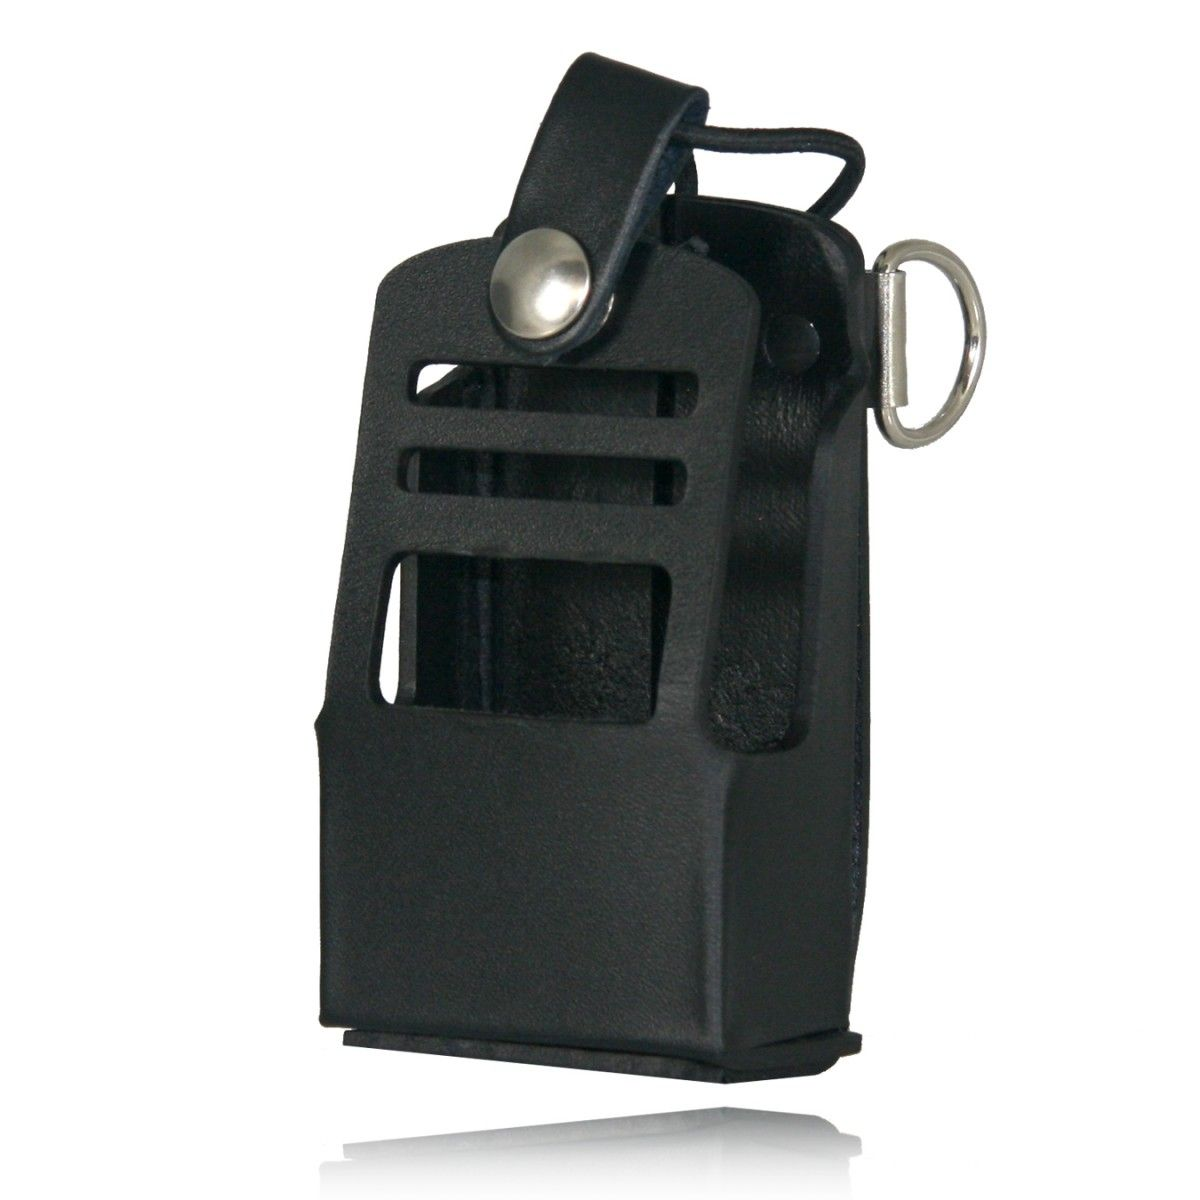 Firefighter's Radio Holder for Motorola EX600 XLS (High Window)